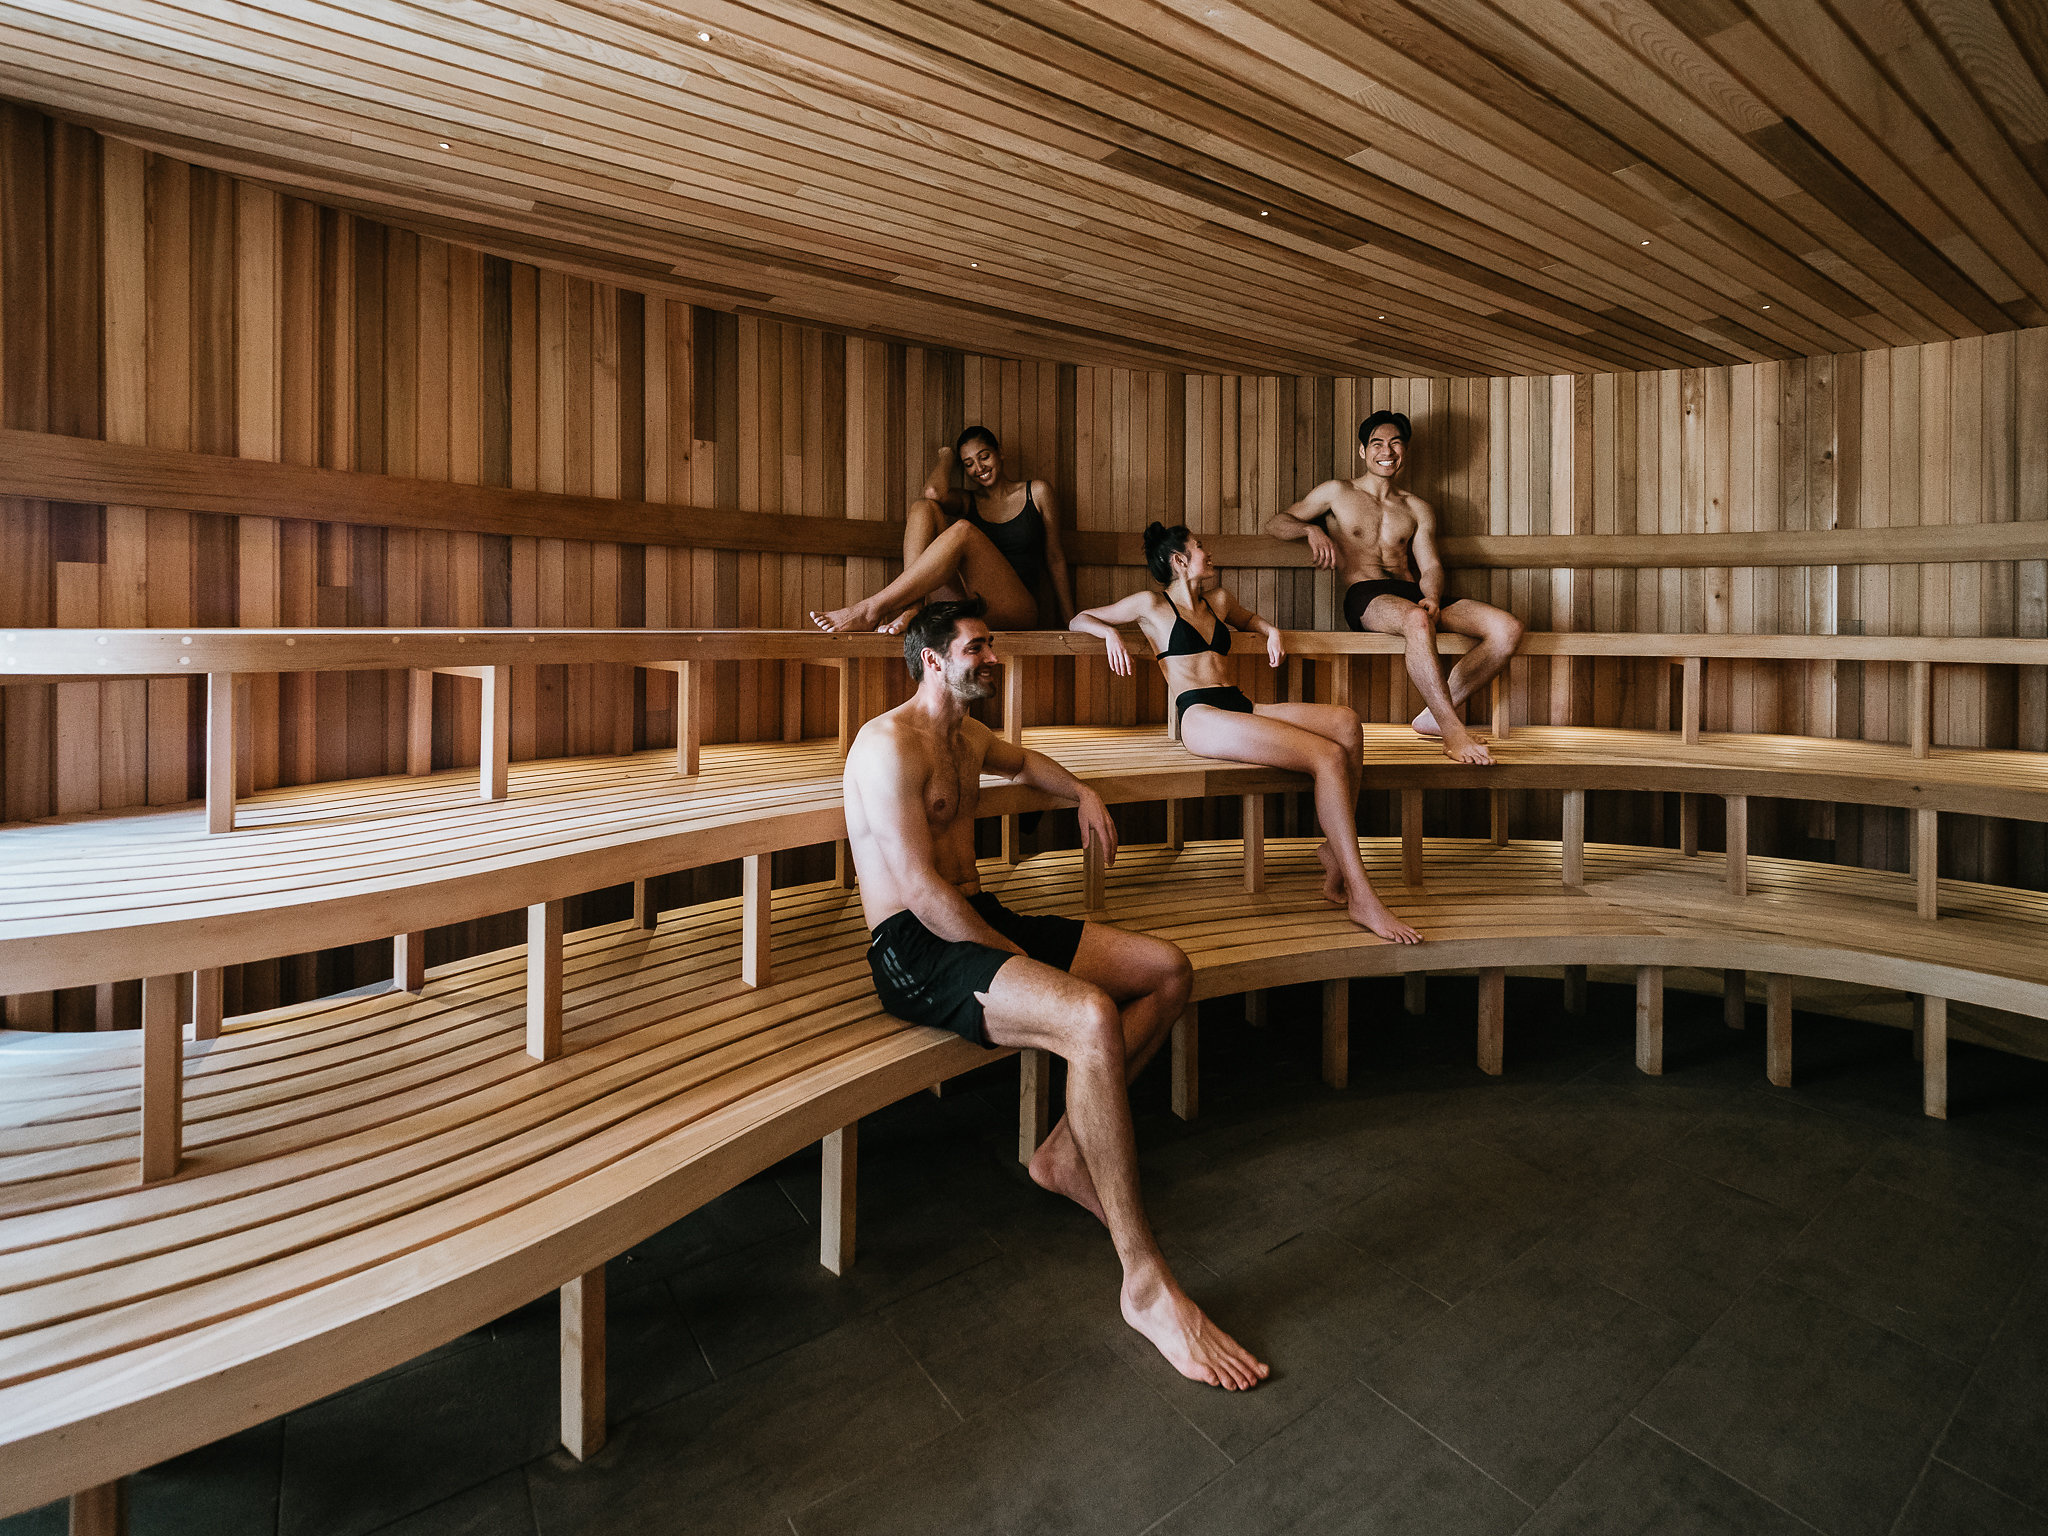 Warming up in the sauna